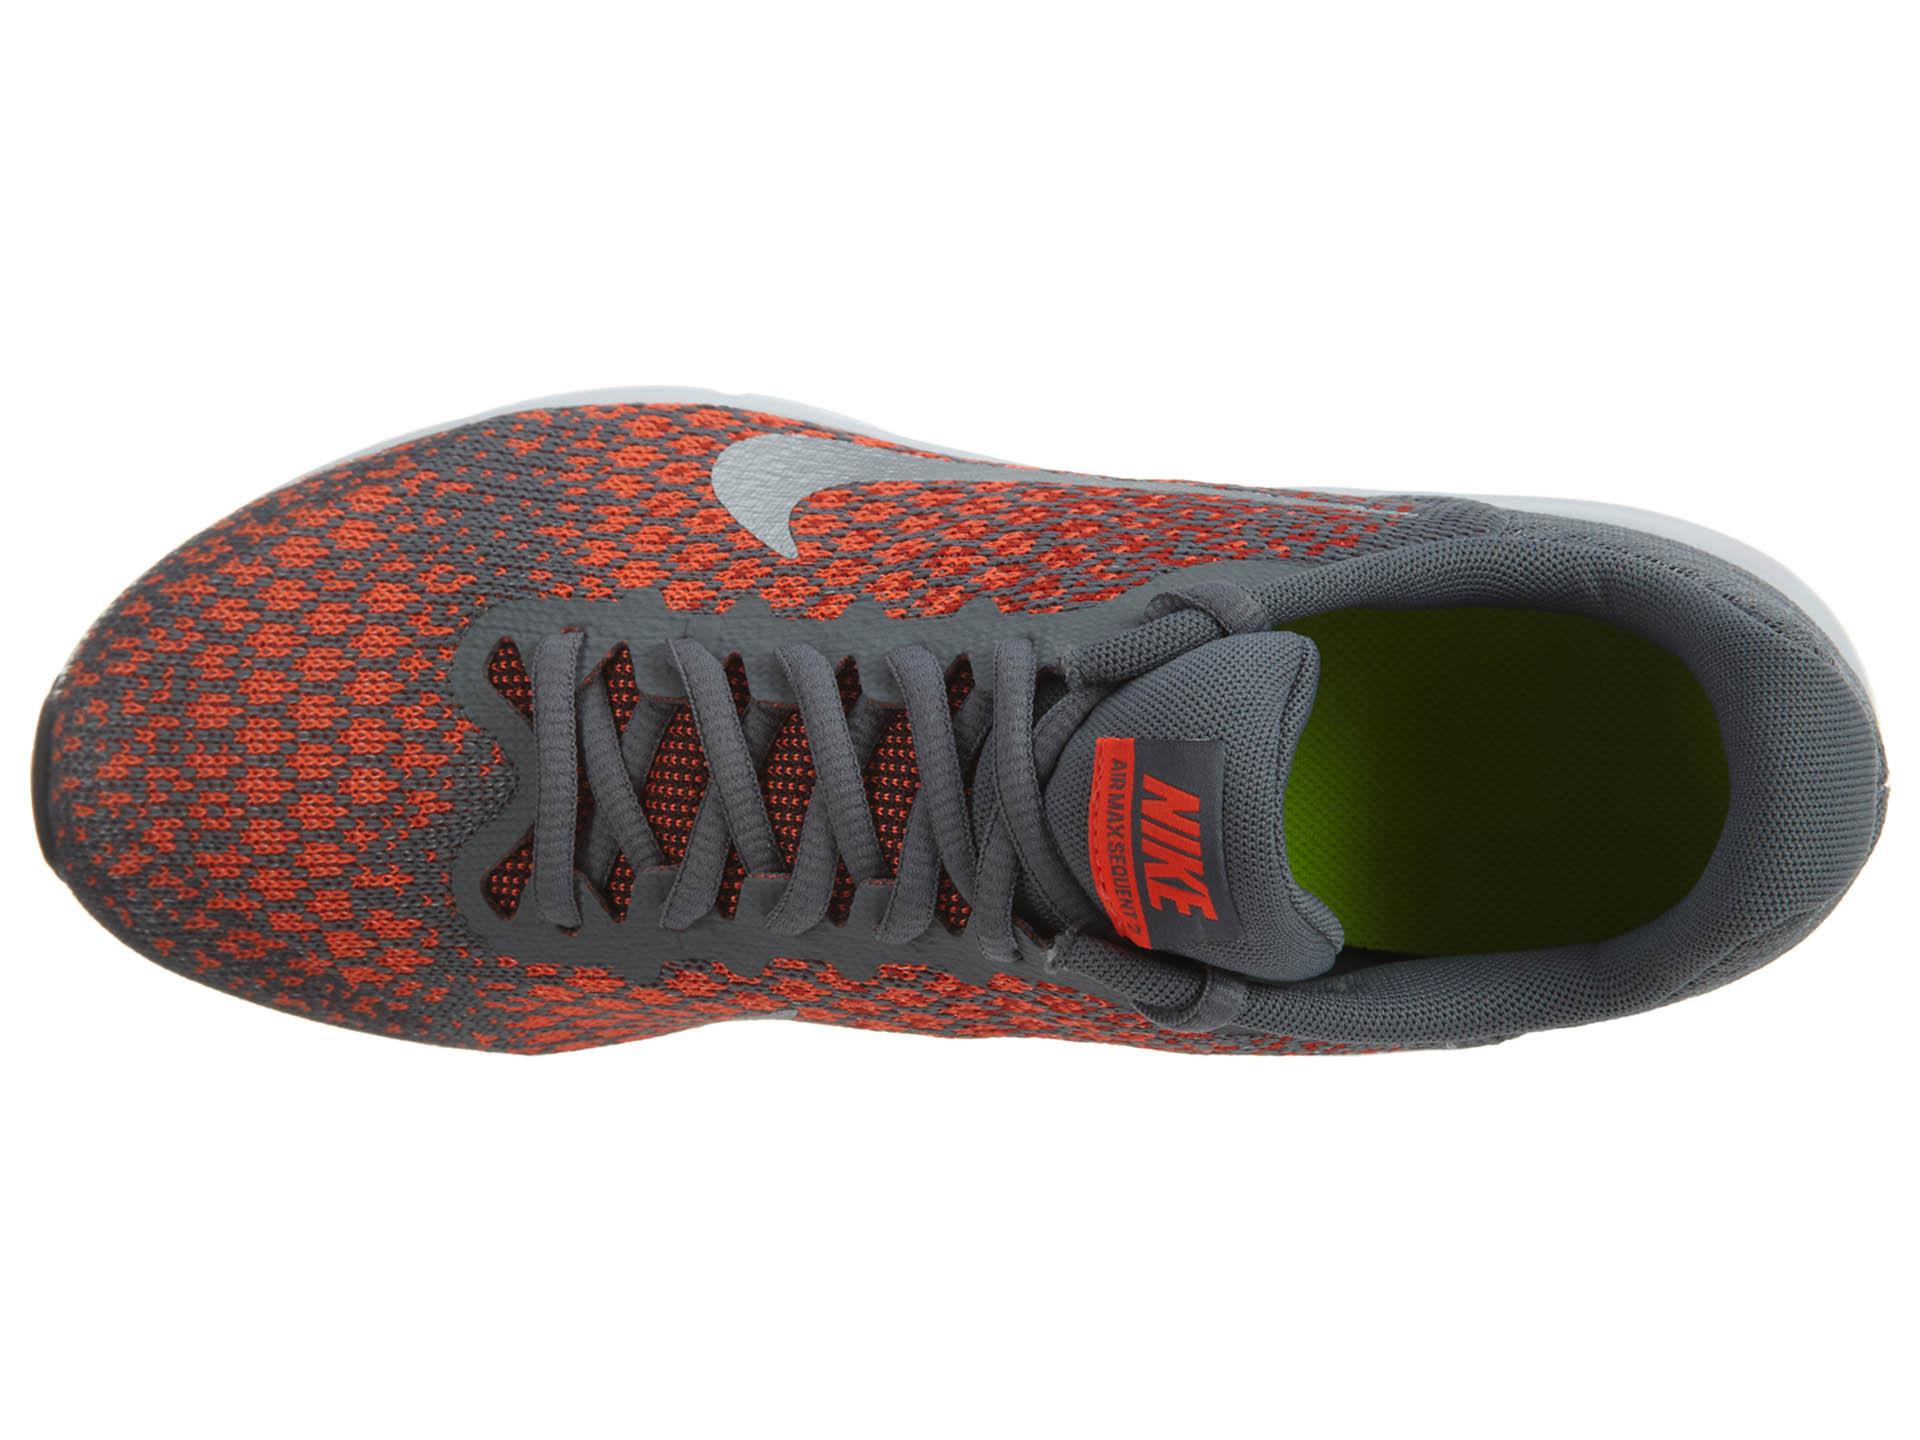 Nike Air Max Sequent 2 Big Kids Style : 869993